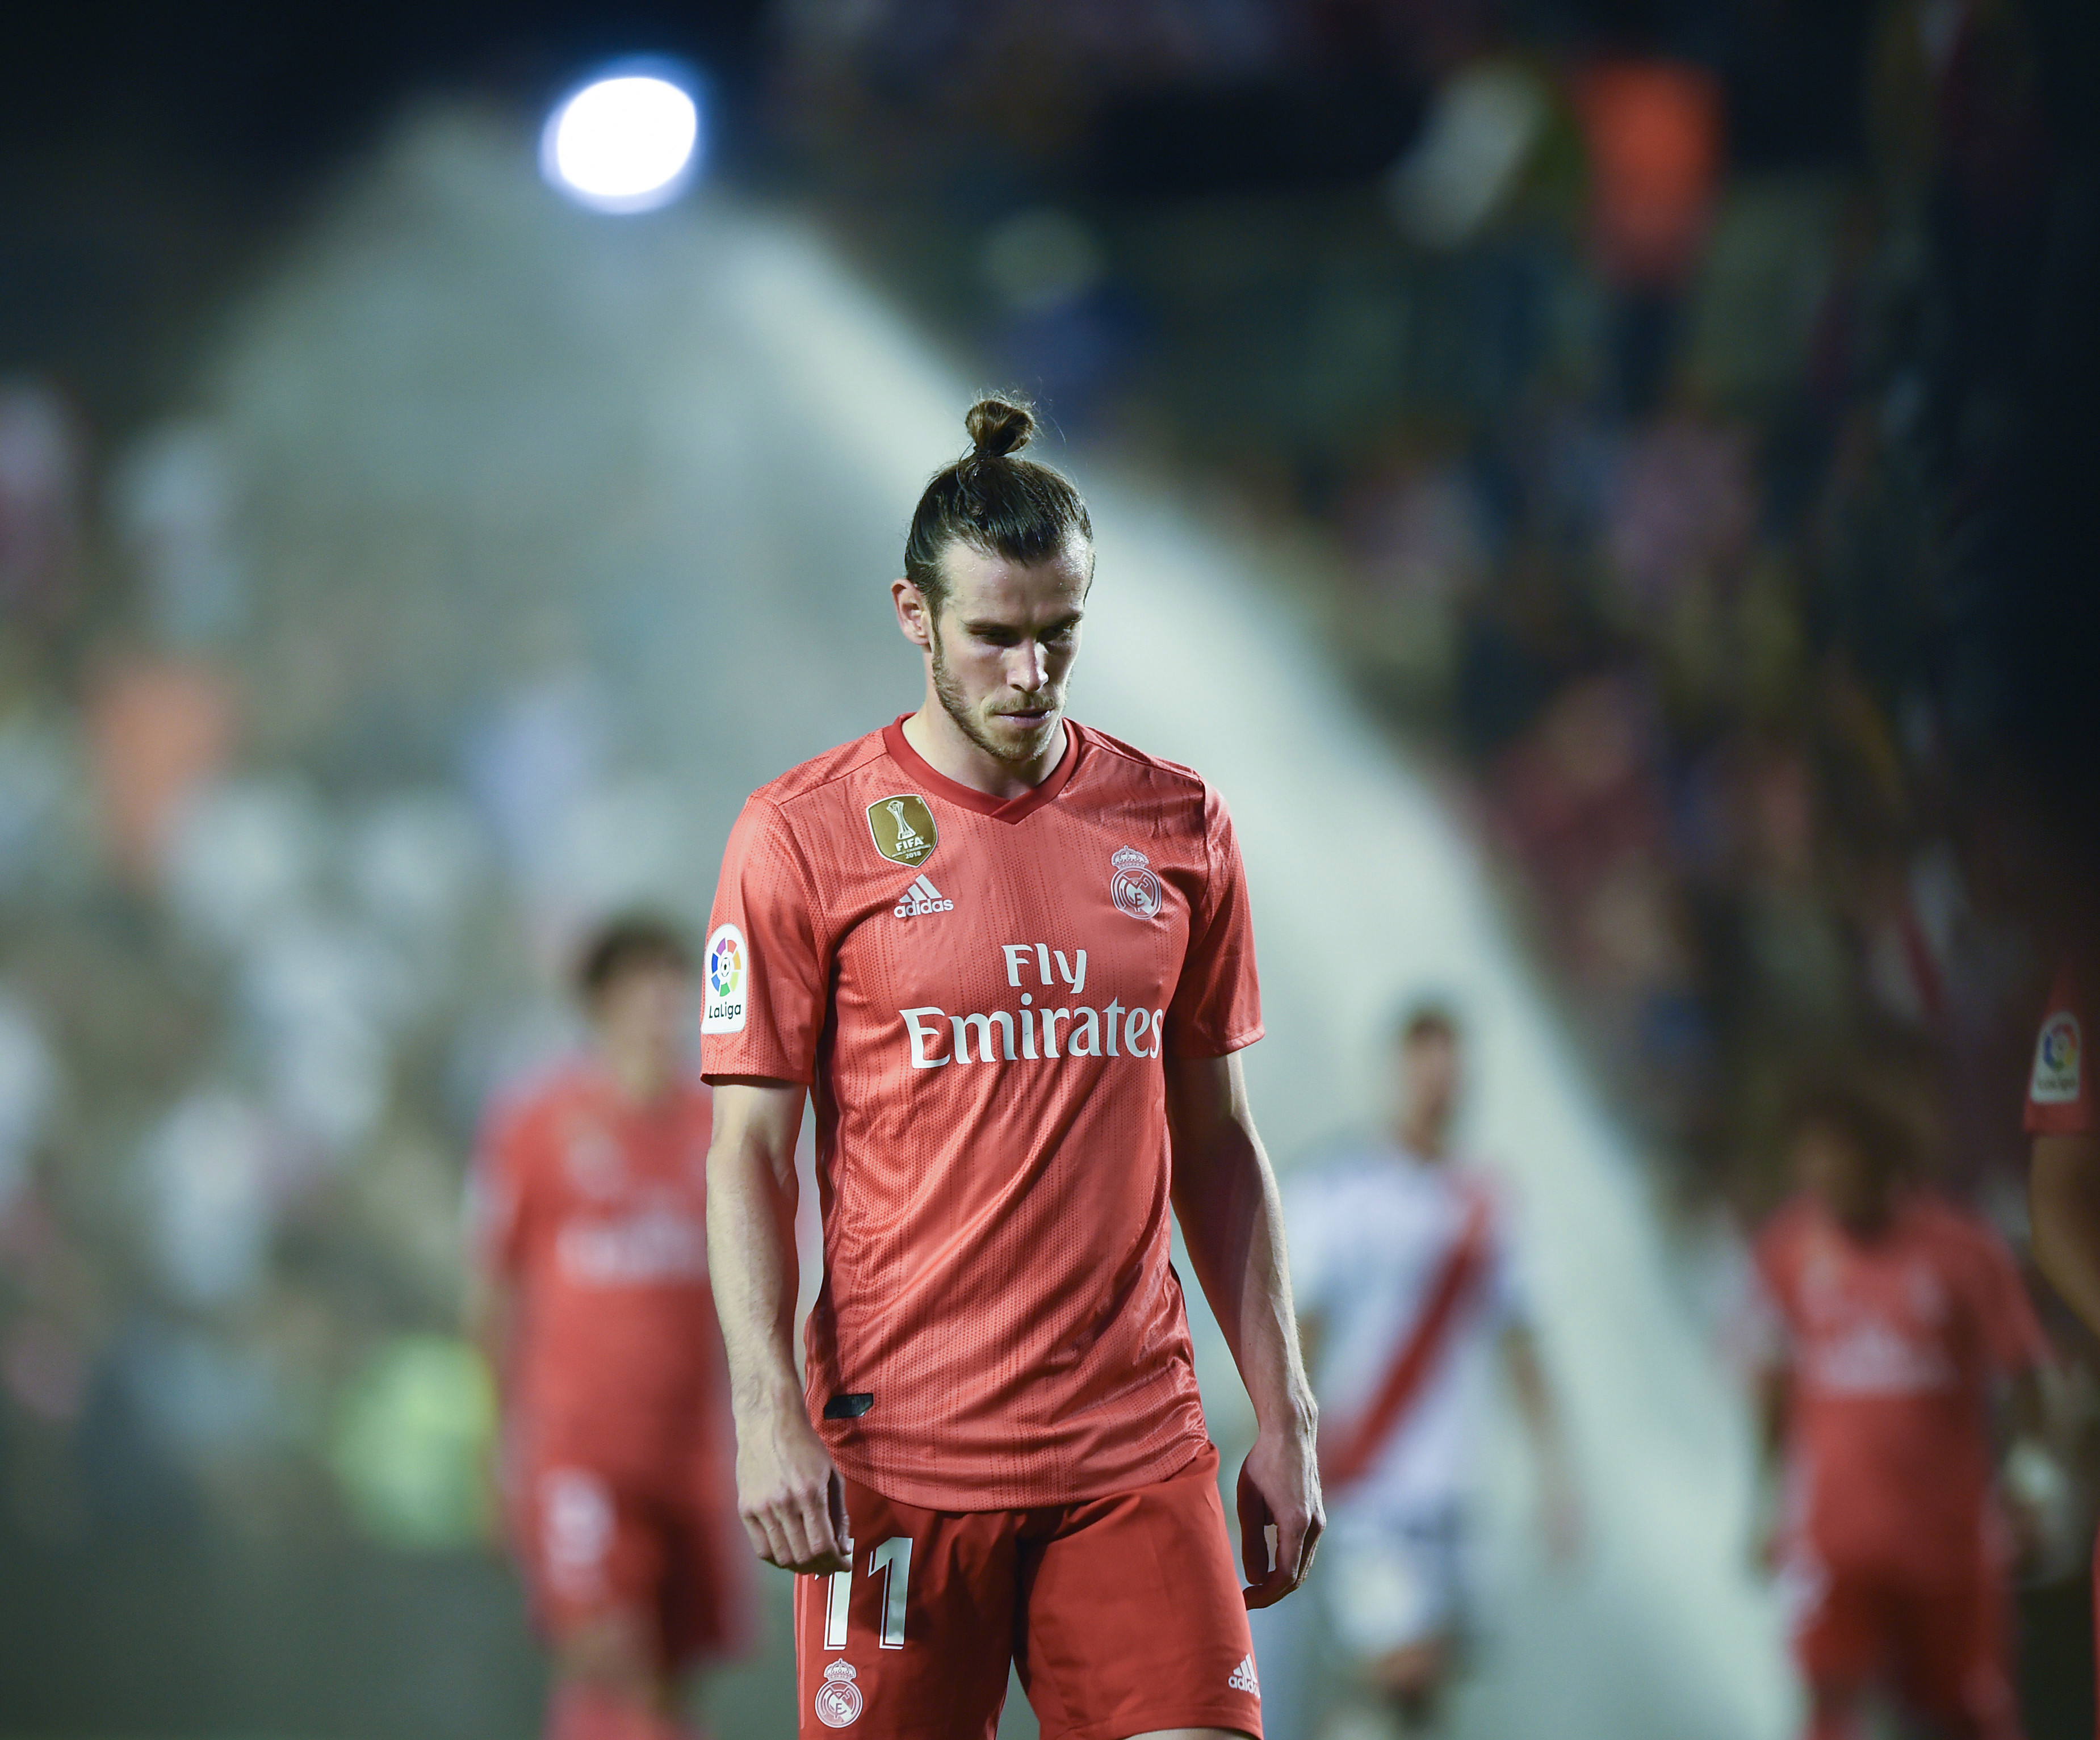 Gareth Bale was dropped from the Real Madrid team towards the end of the season